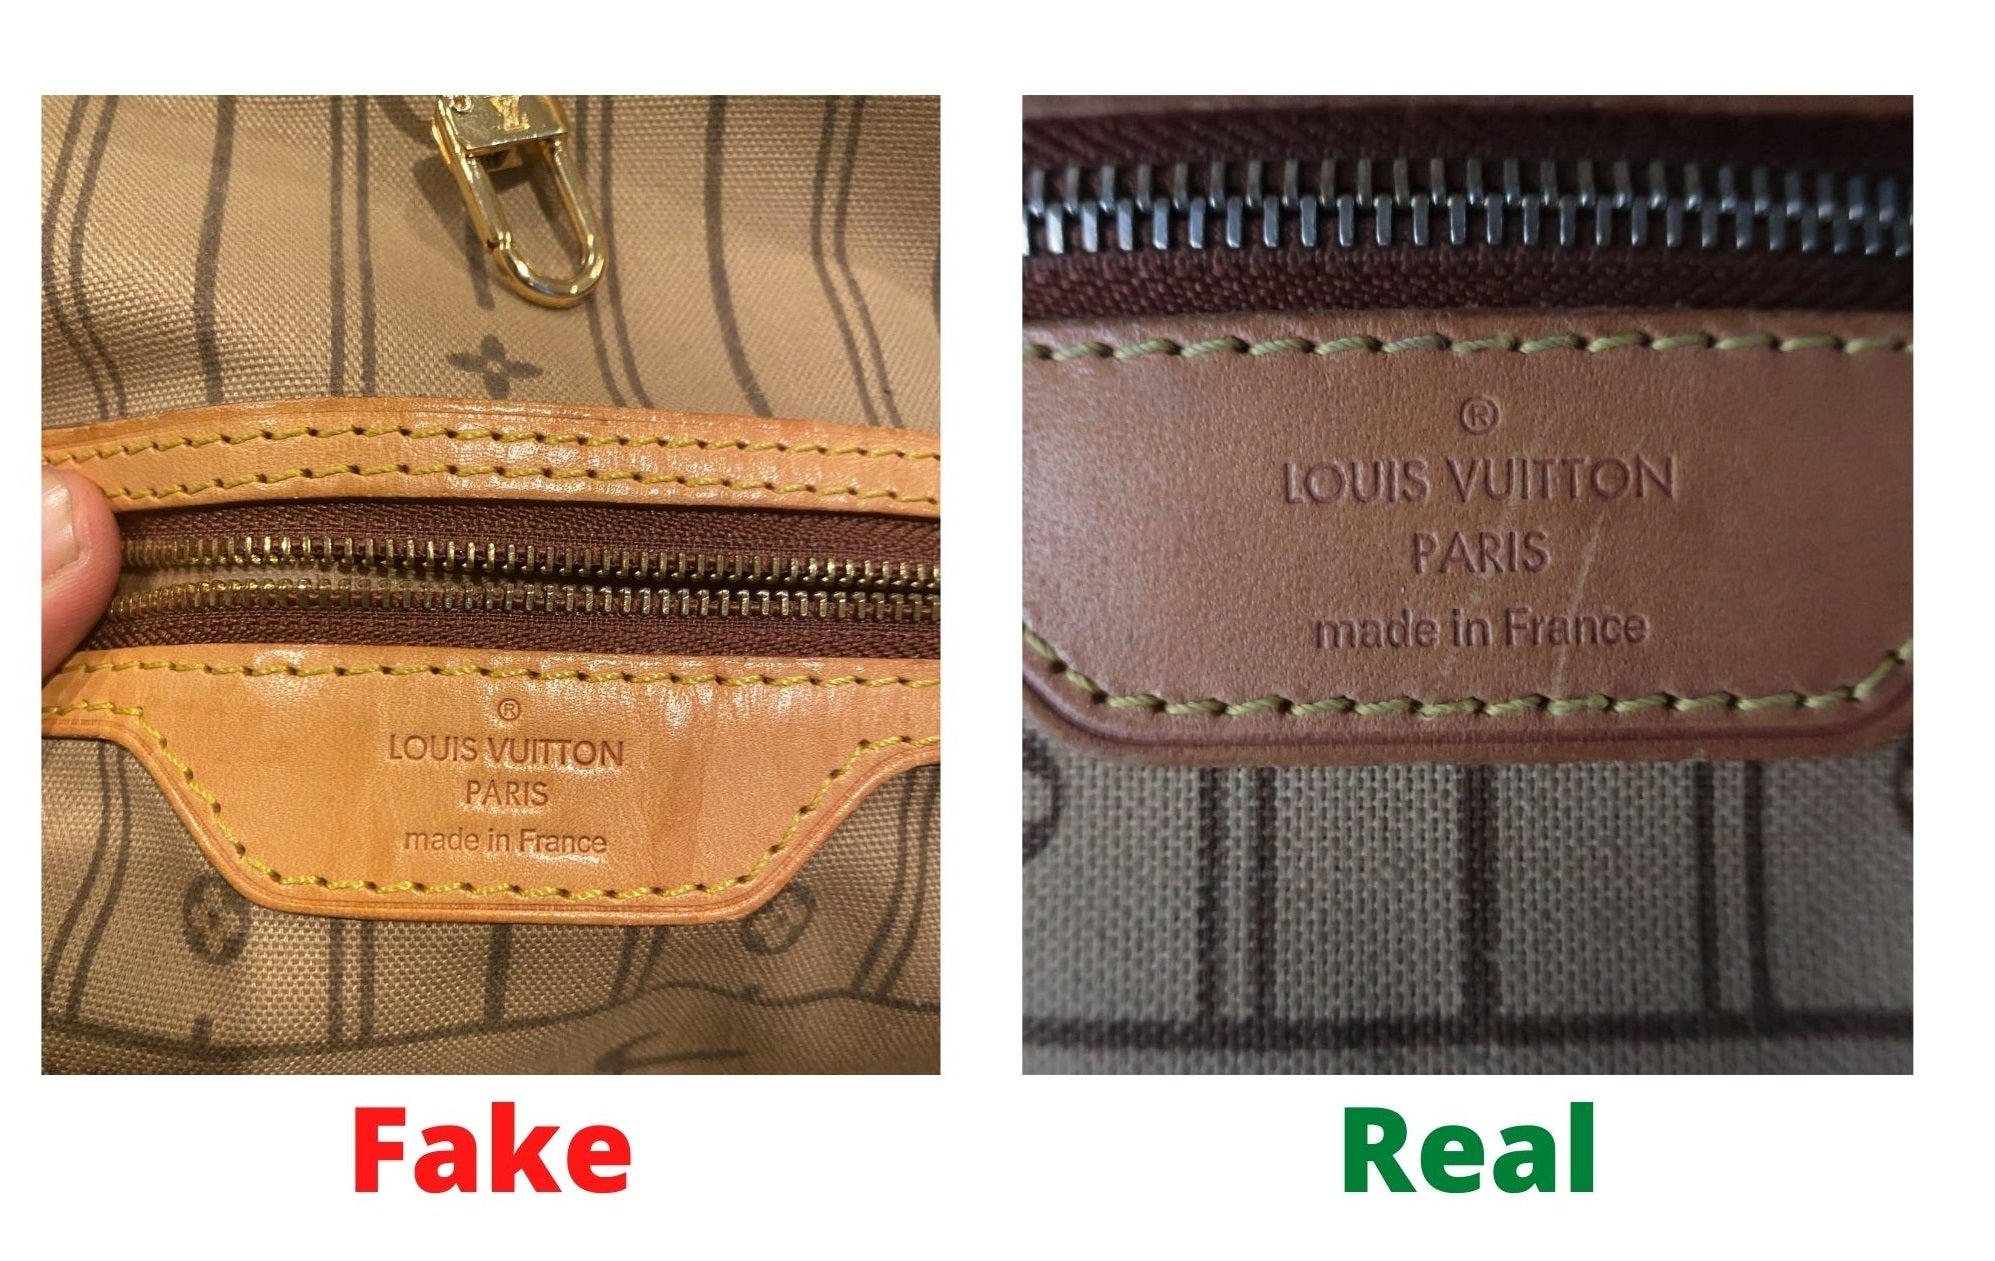 Fake Louis Vuitton Neverfull vs Real: Important Details You Should Definitely Pay Attention To (With Photo Examples) neverfull monogram real vs fake heat stamp